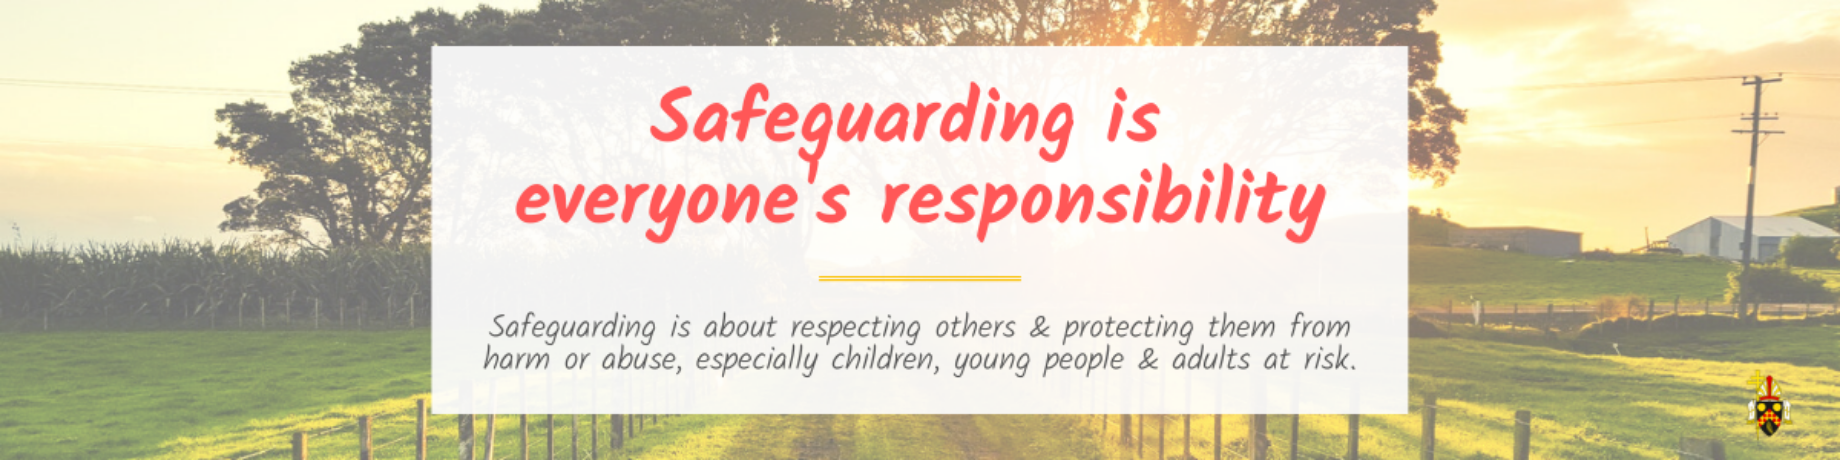 Safeguarding in the Archdiocese